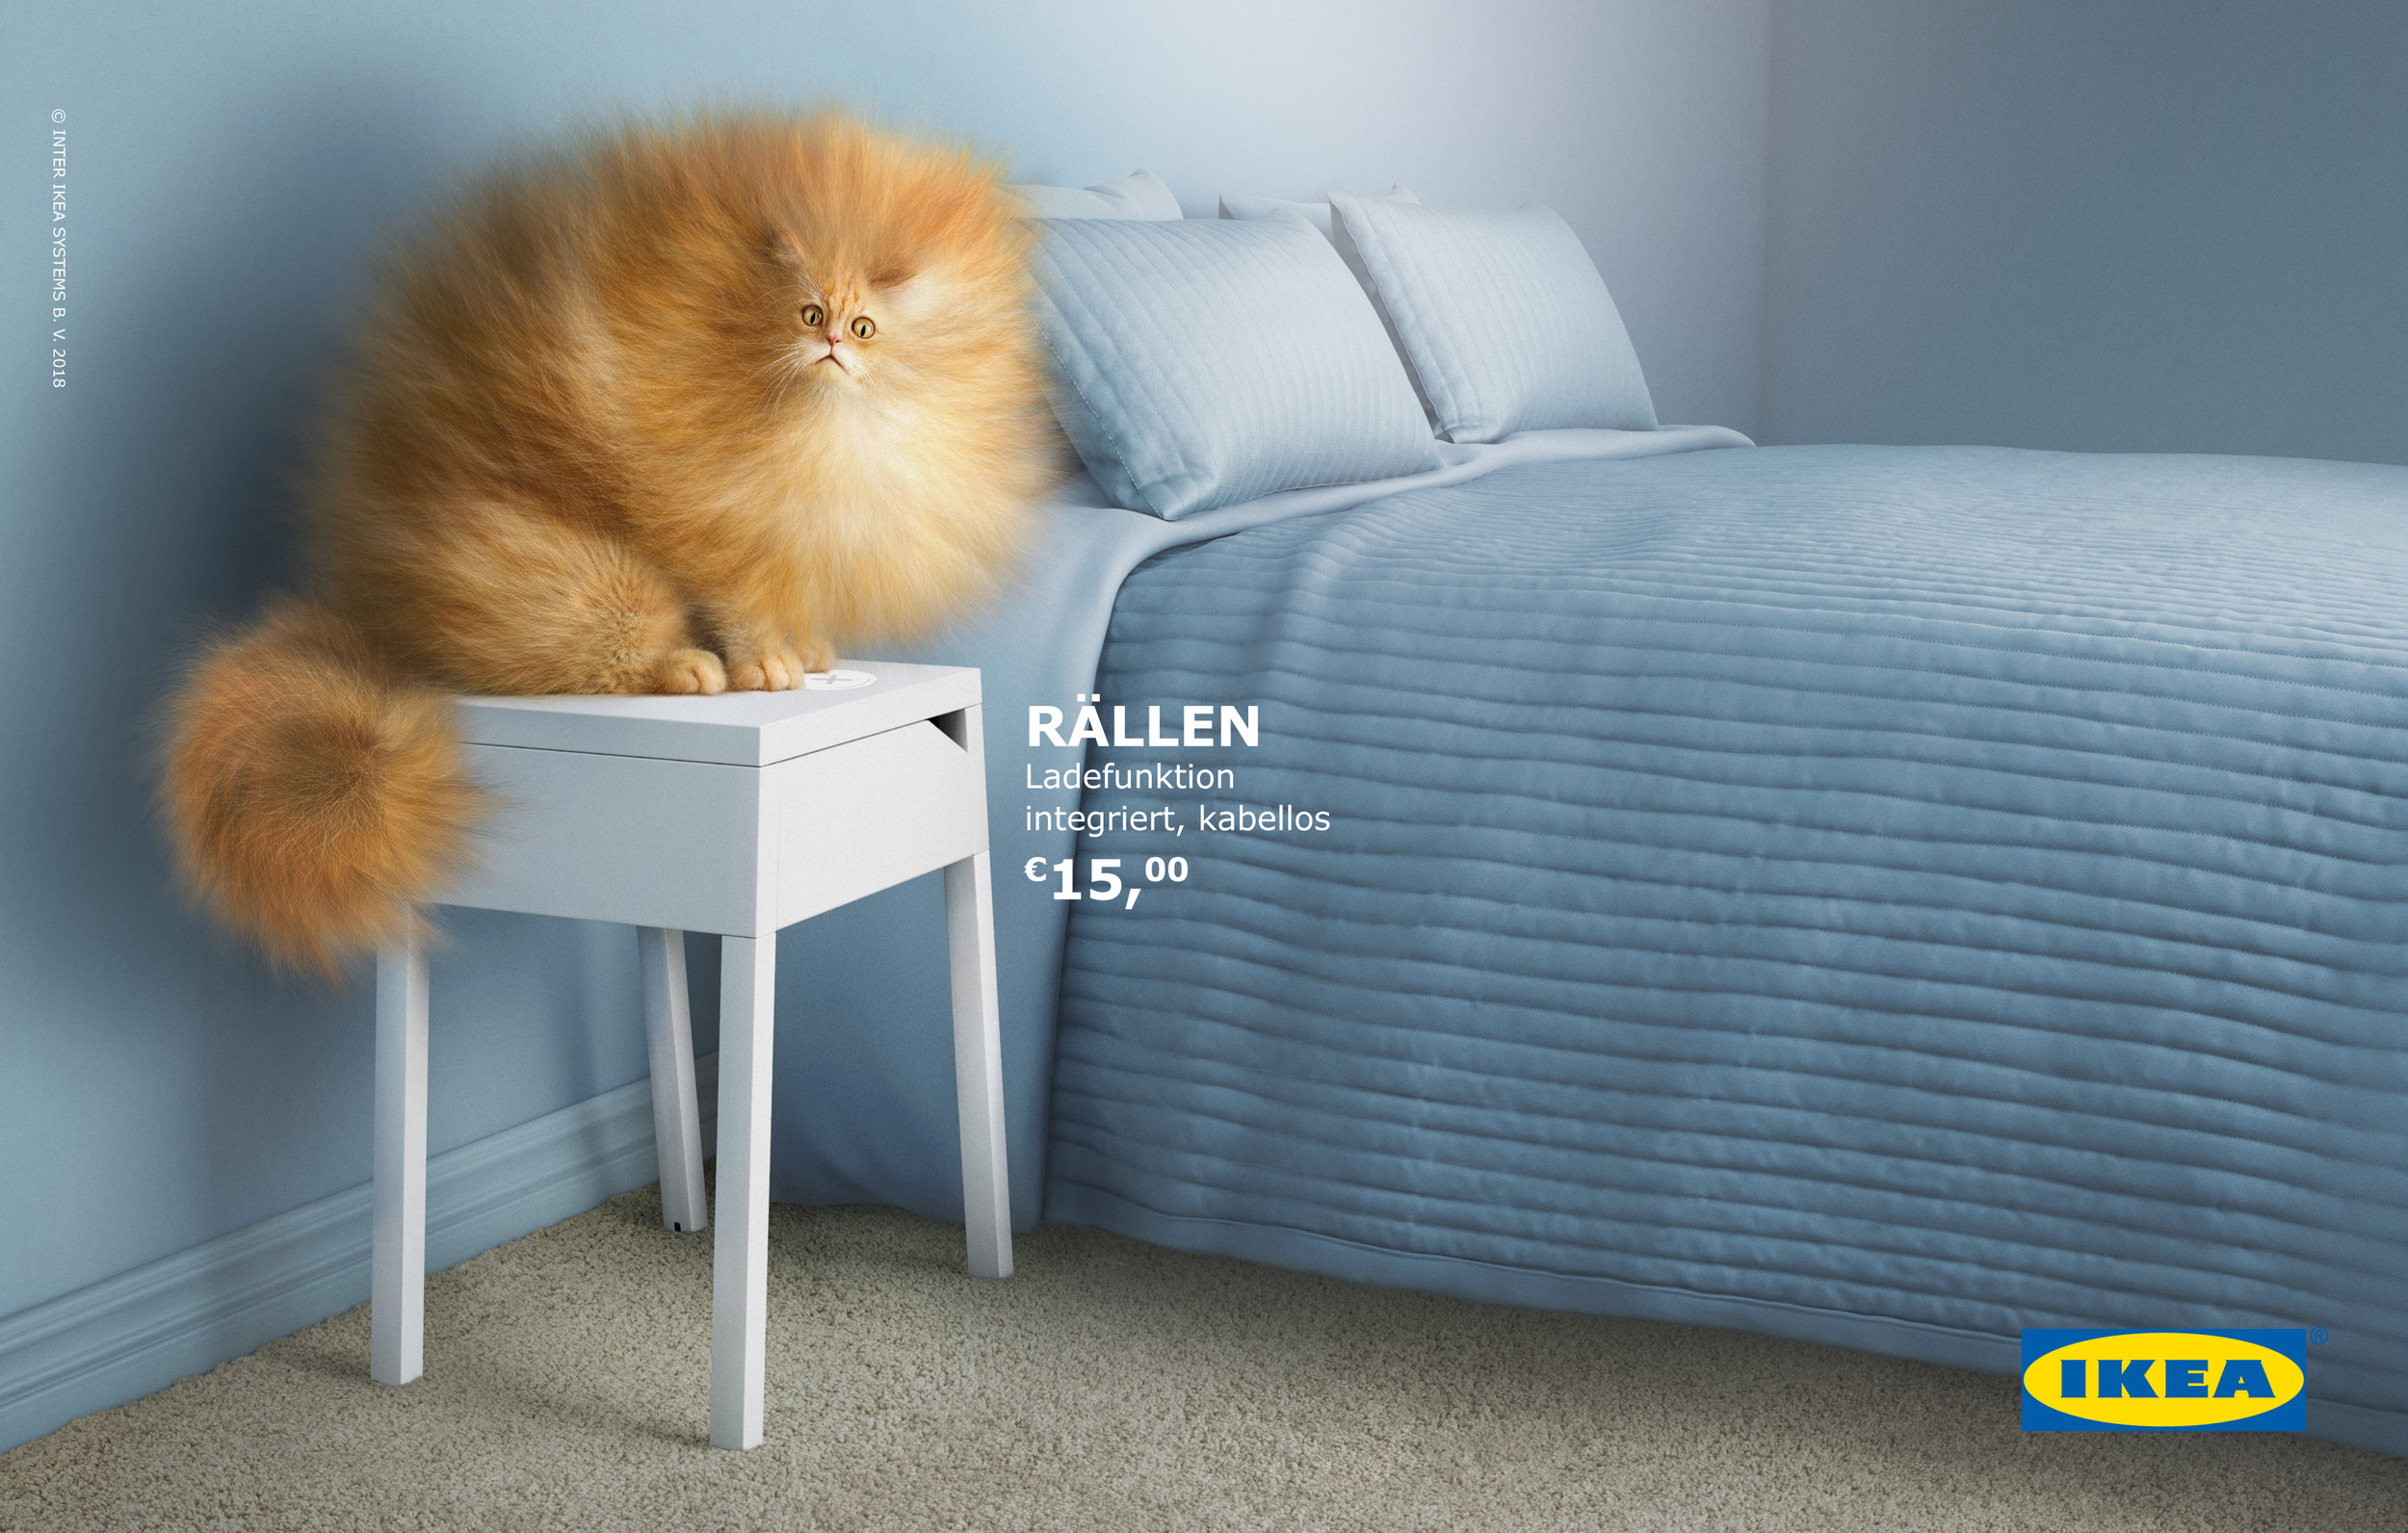 Ikea_Cats_Press_Bedroom.jpg